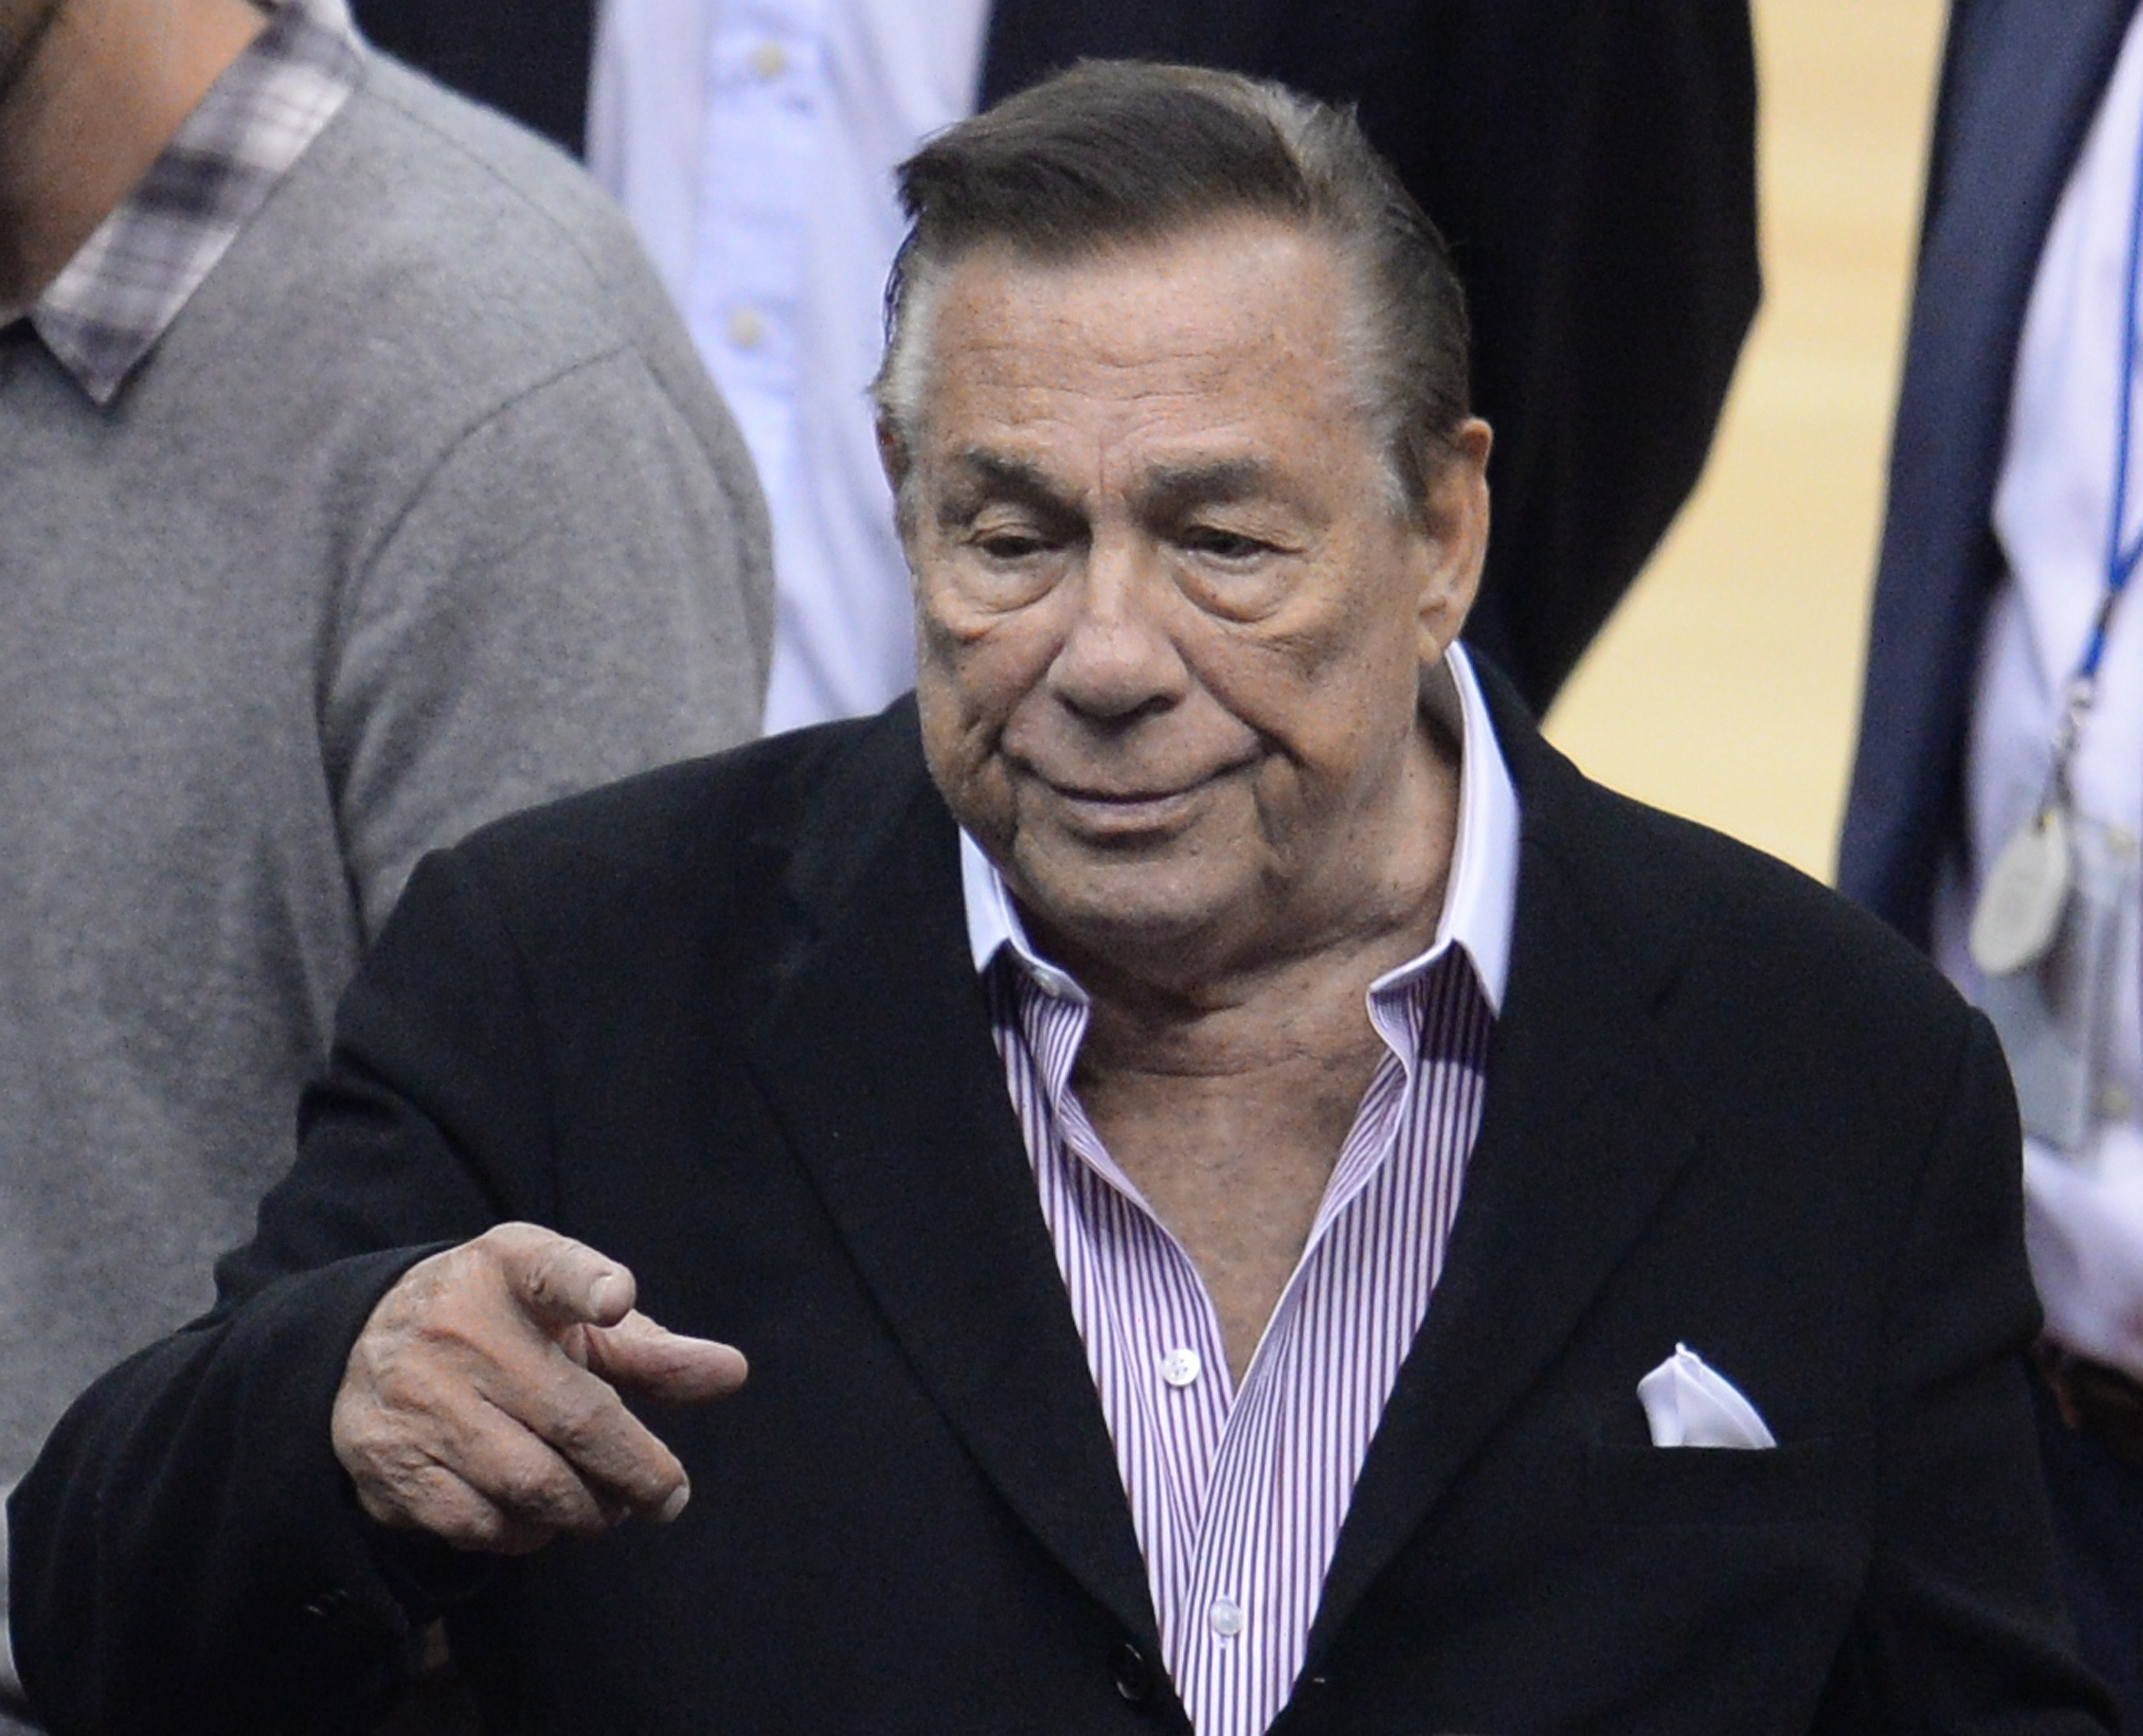 Los Angeles Clippers owner Donald Sterling attends the NBA playoff game between the Clippers and the Golden State Warriors on April 21, 2014 at Staples Center in Los Angeles.